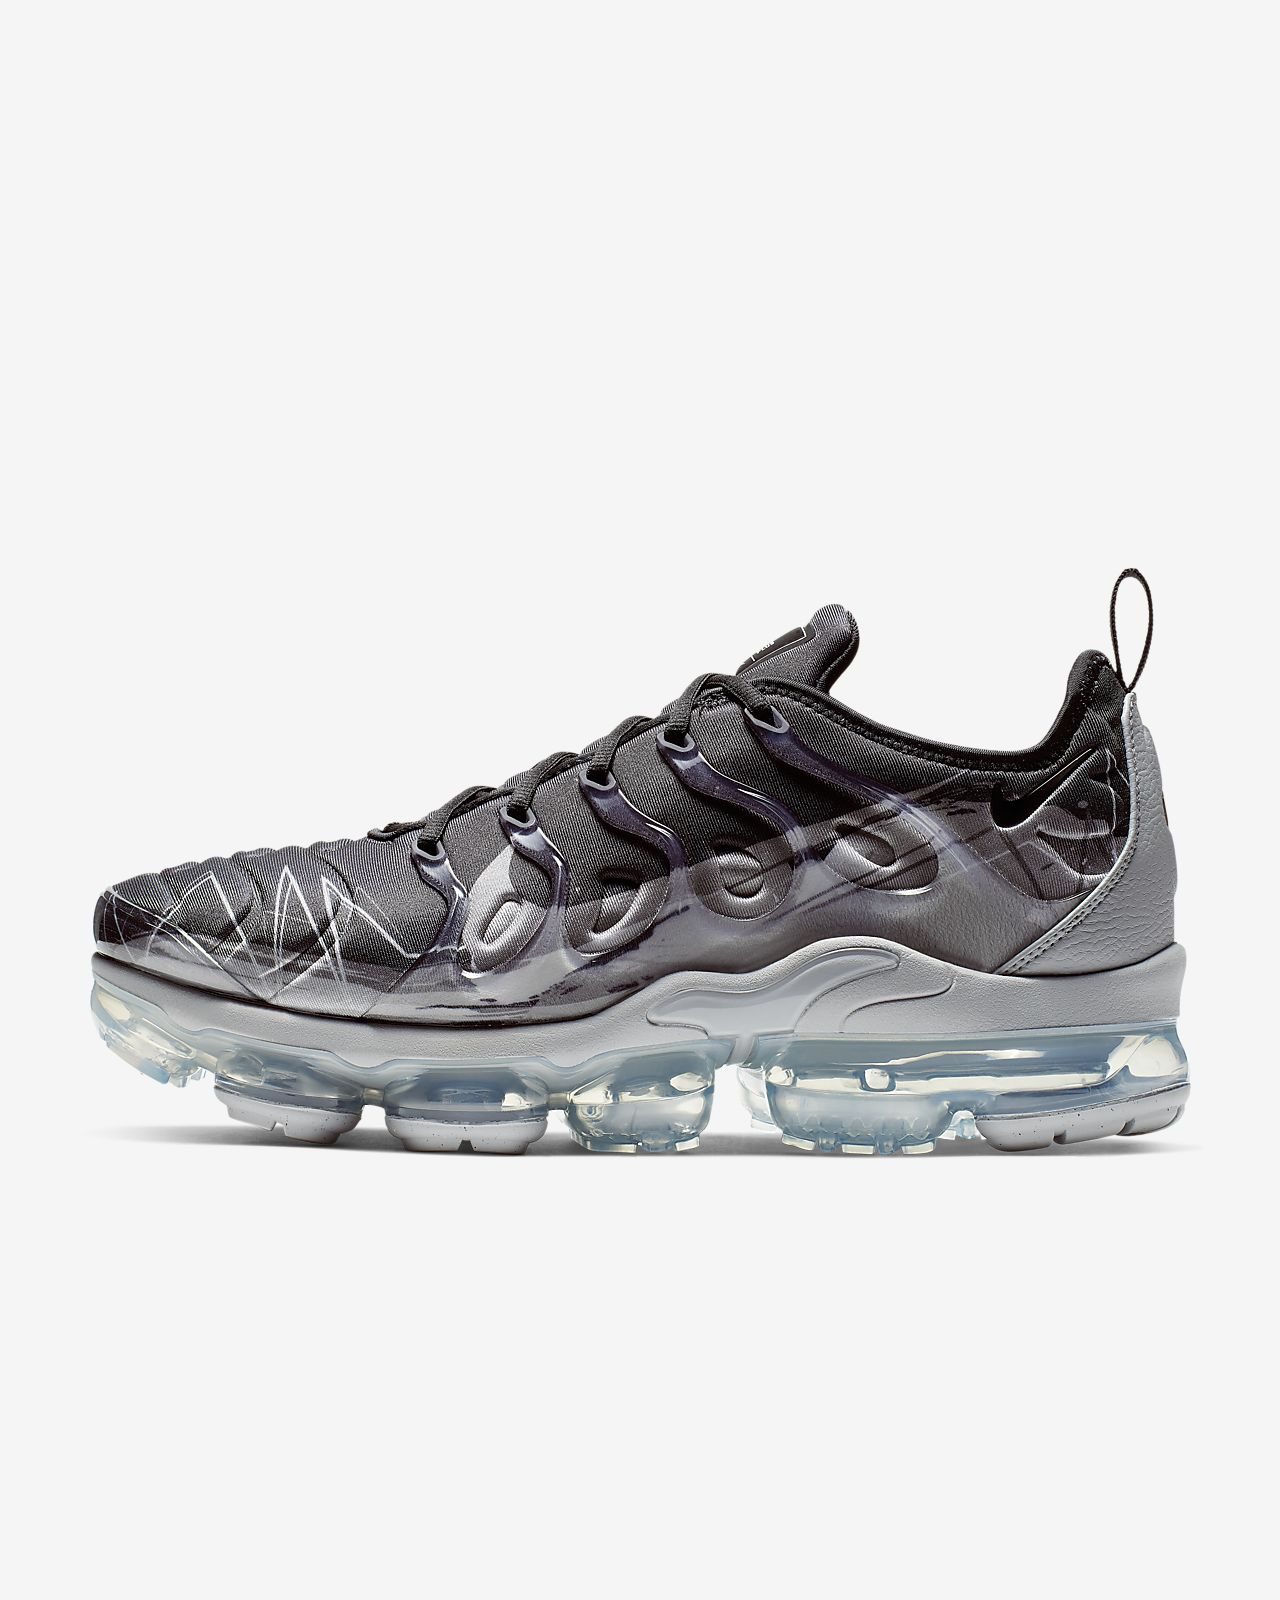 d0a8a97a29 Nike Air VaporMax Plus Men's Shoe. Nike.com GB